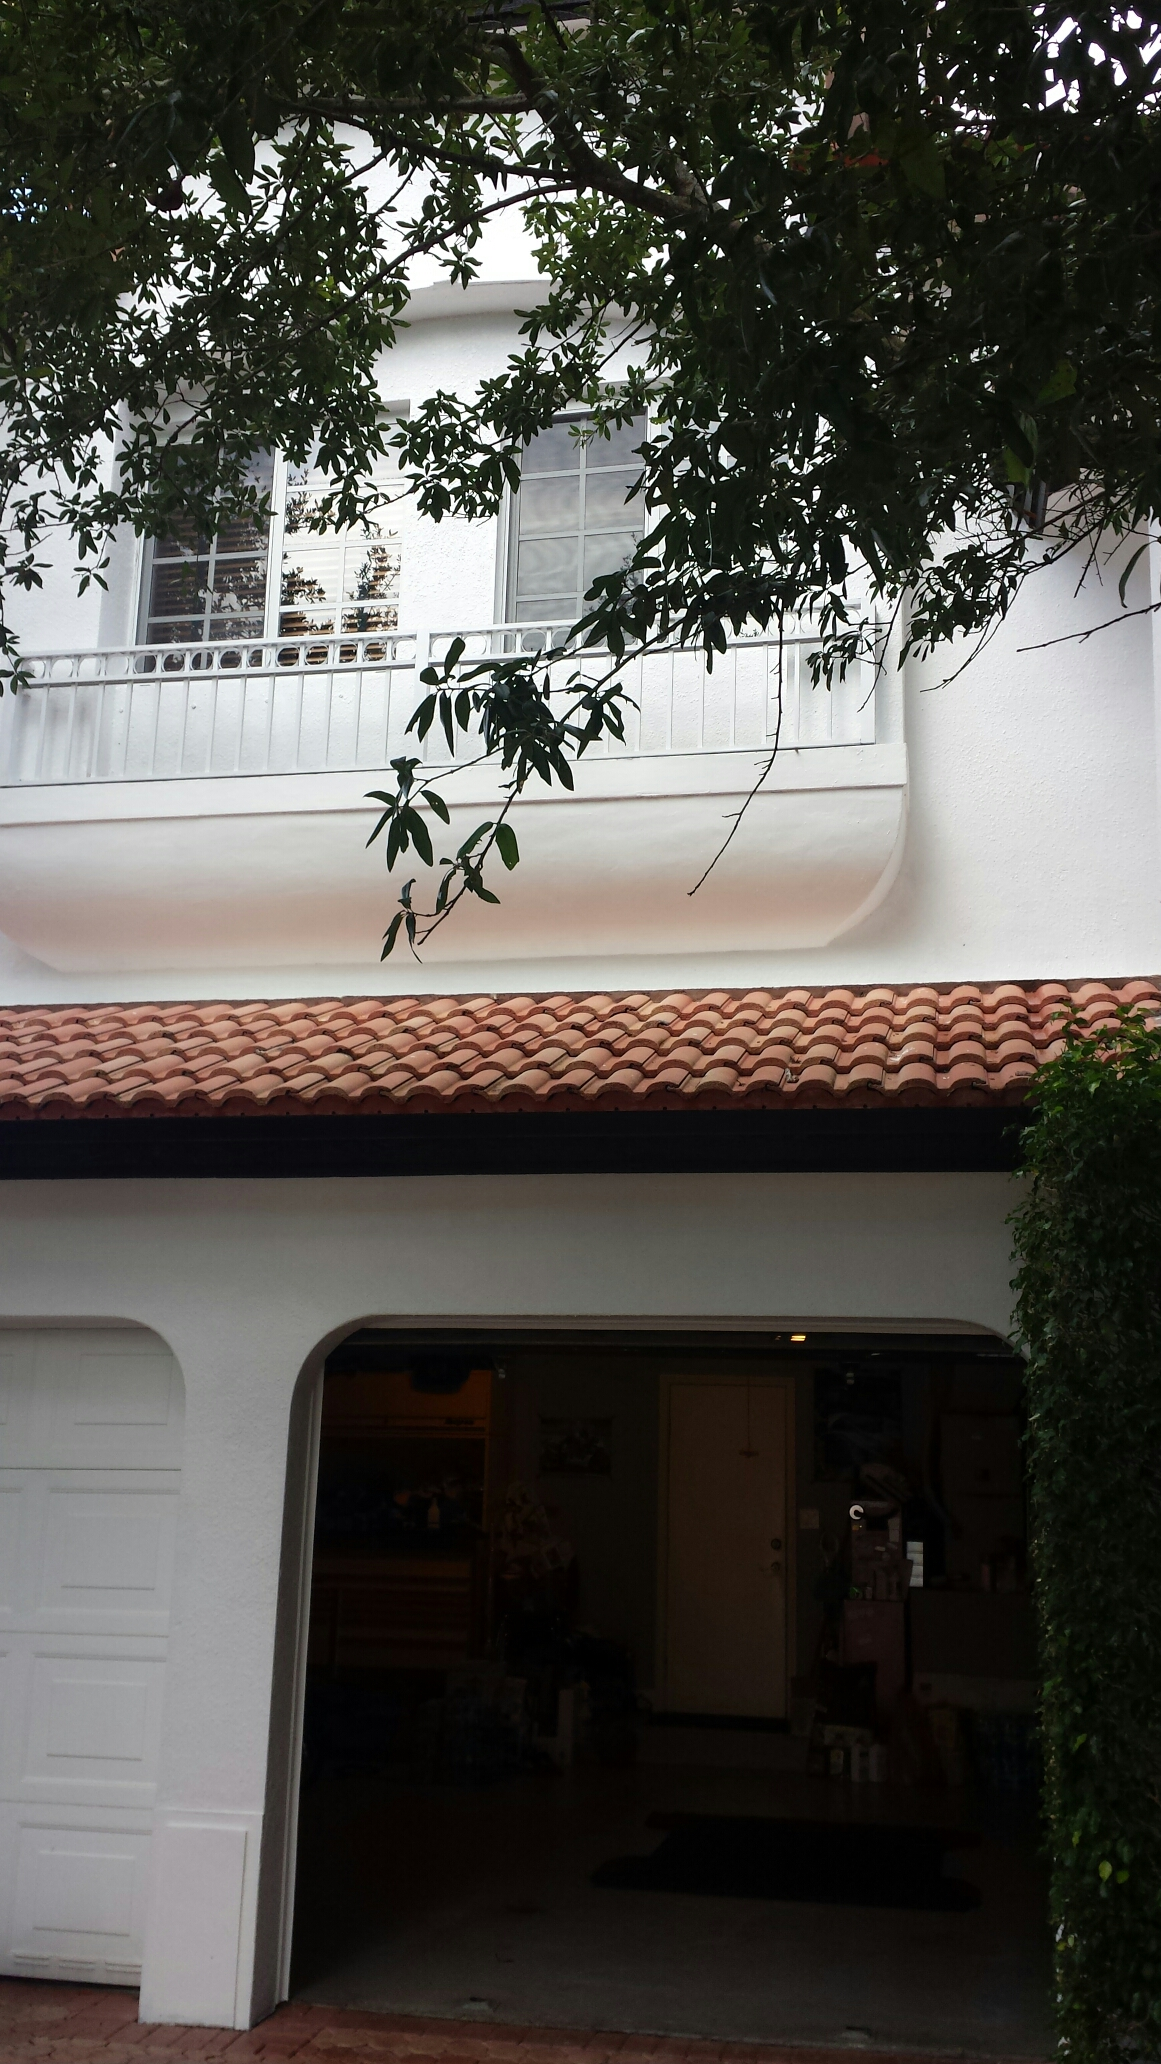 Doral, FL - Tile repair estimate at Doral